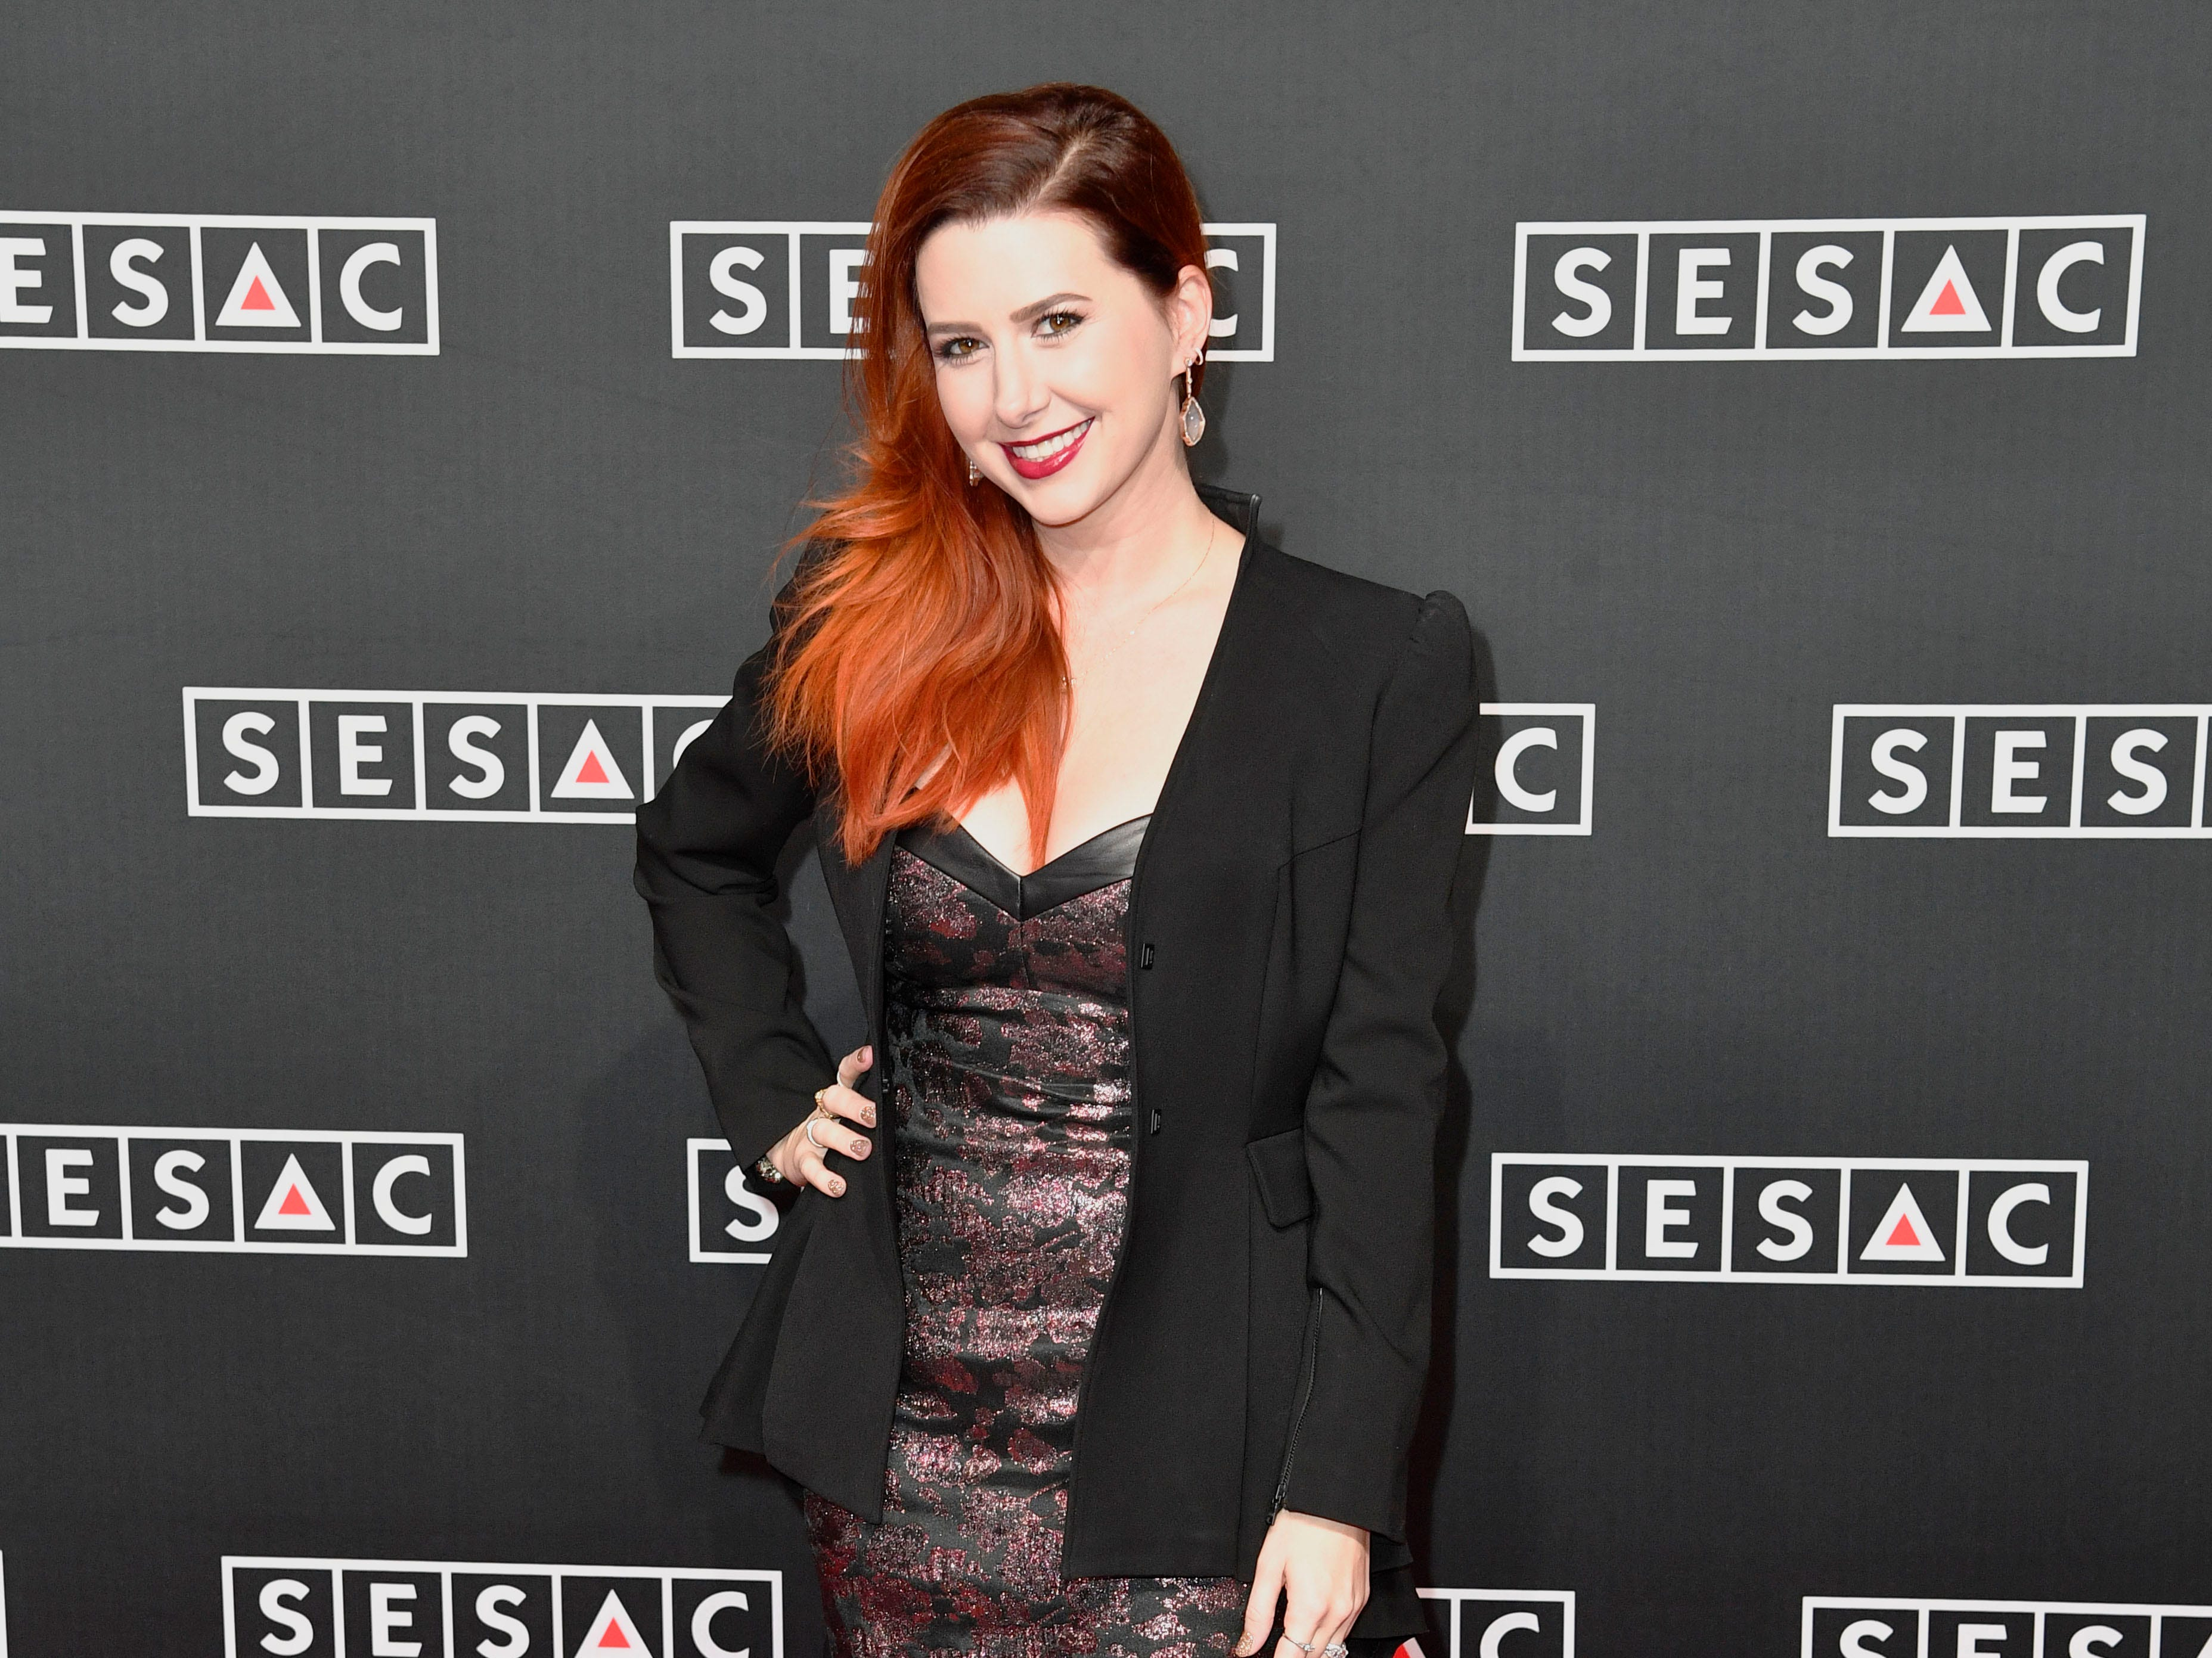 Jesse Lee on the red carpet at the SESAC Nashville Music Awards at the Country Music Hall of Fame and Museum Sunday Nov. 11, 2018, in Nashville, Tenn.